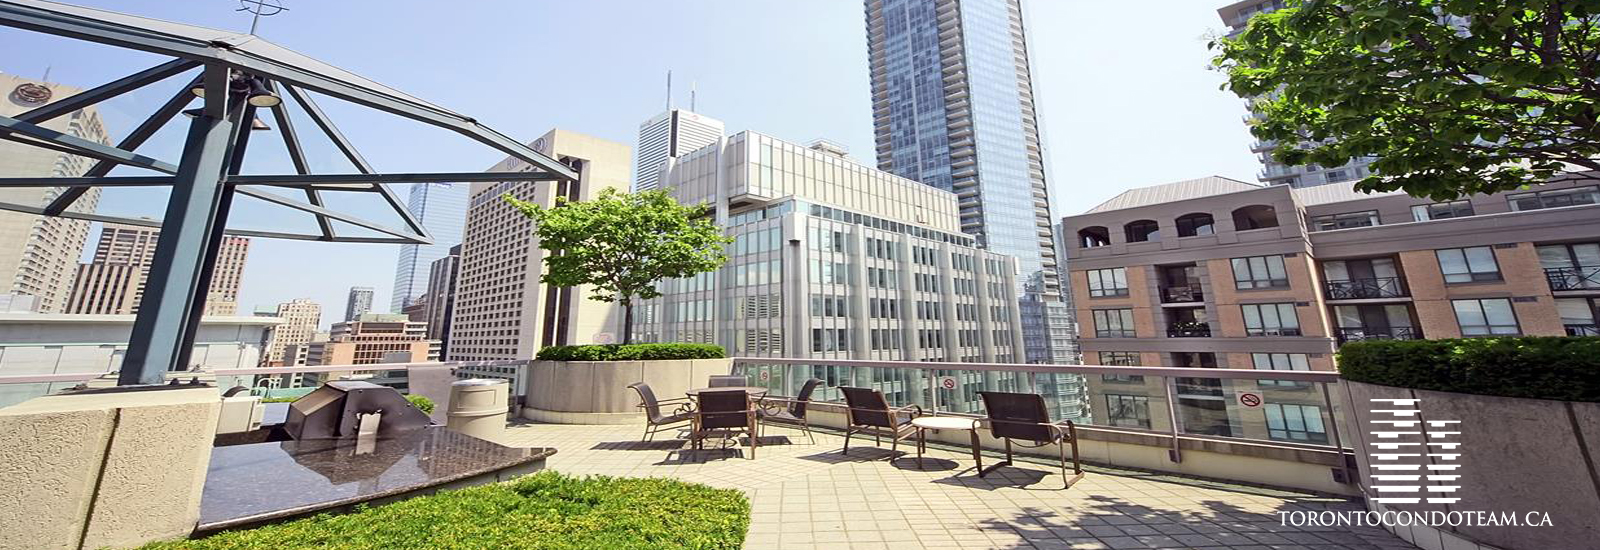 168 Simcoe Street Condos For Sale